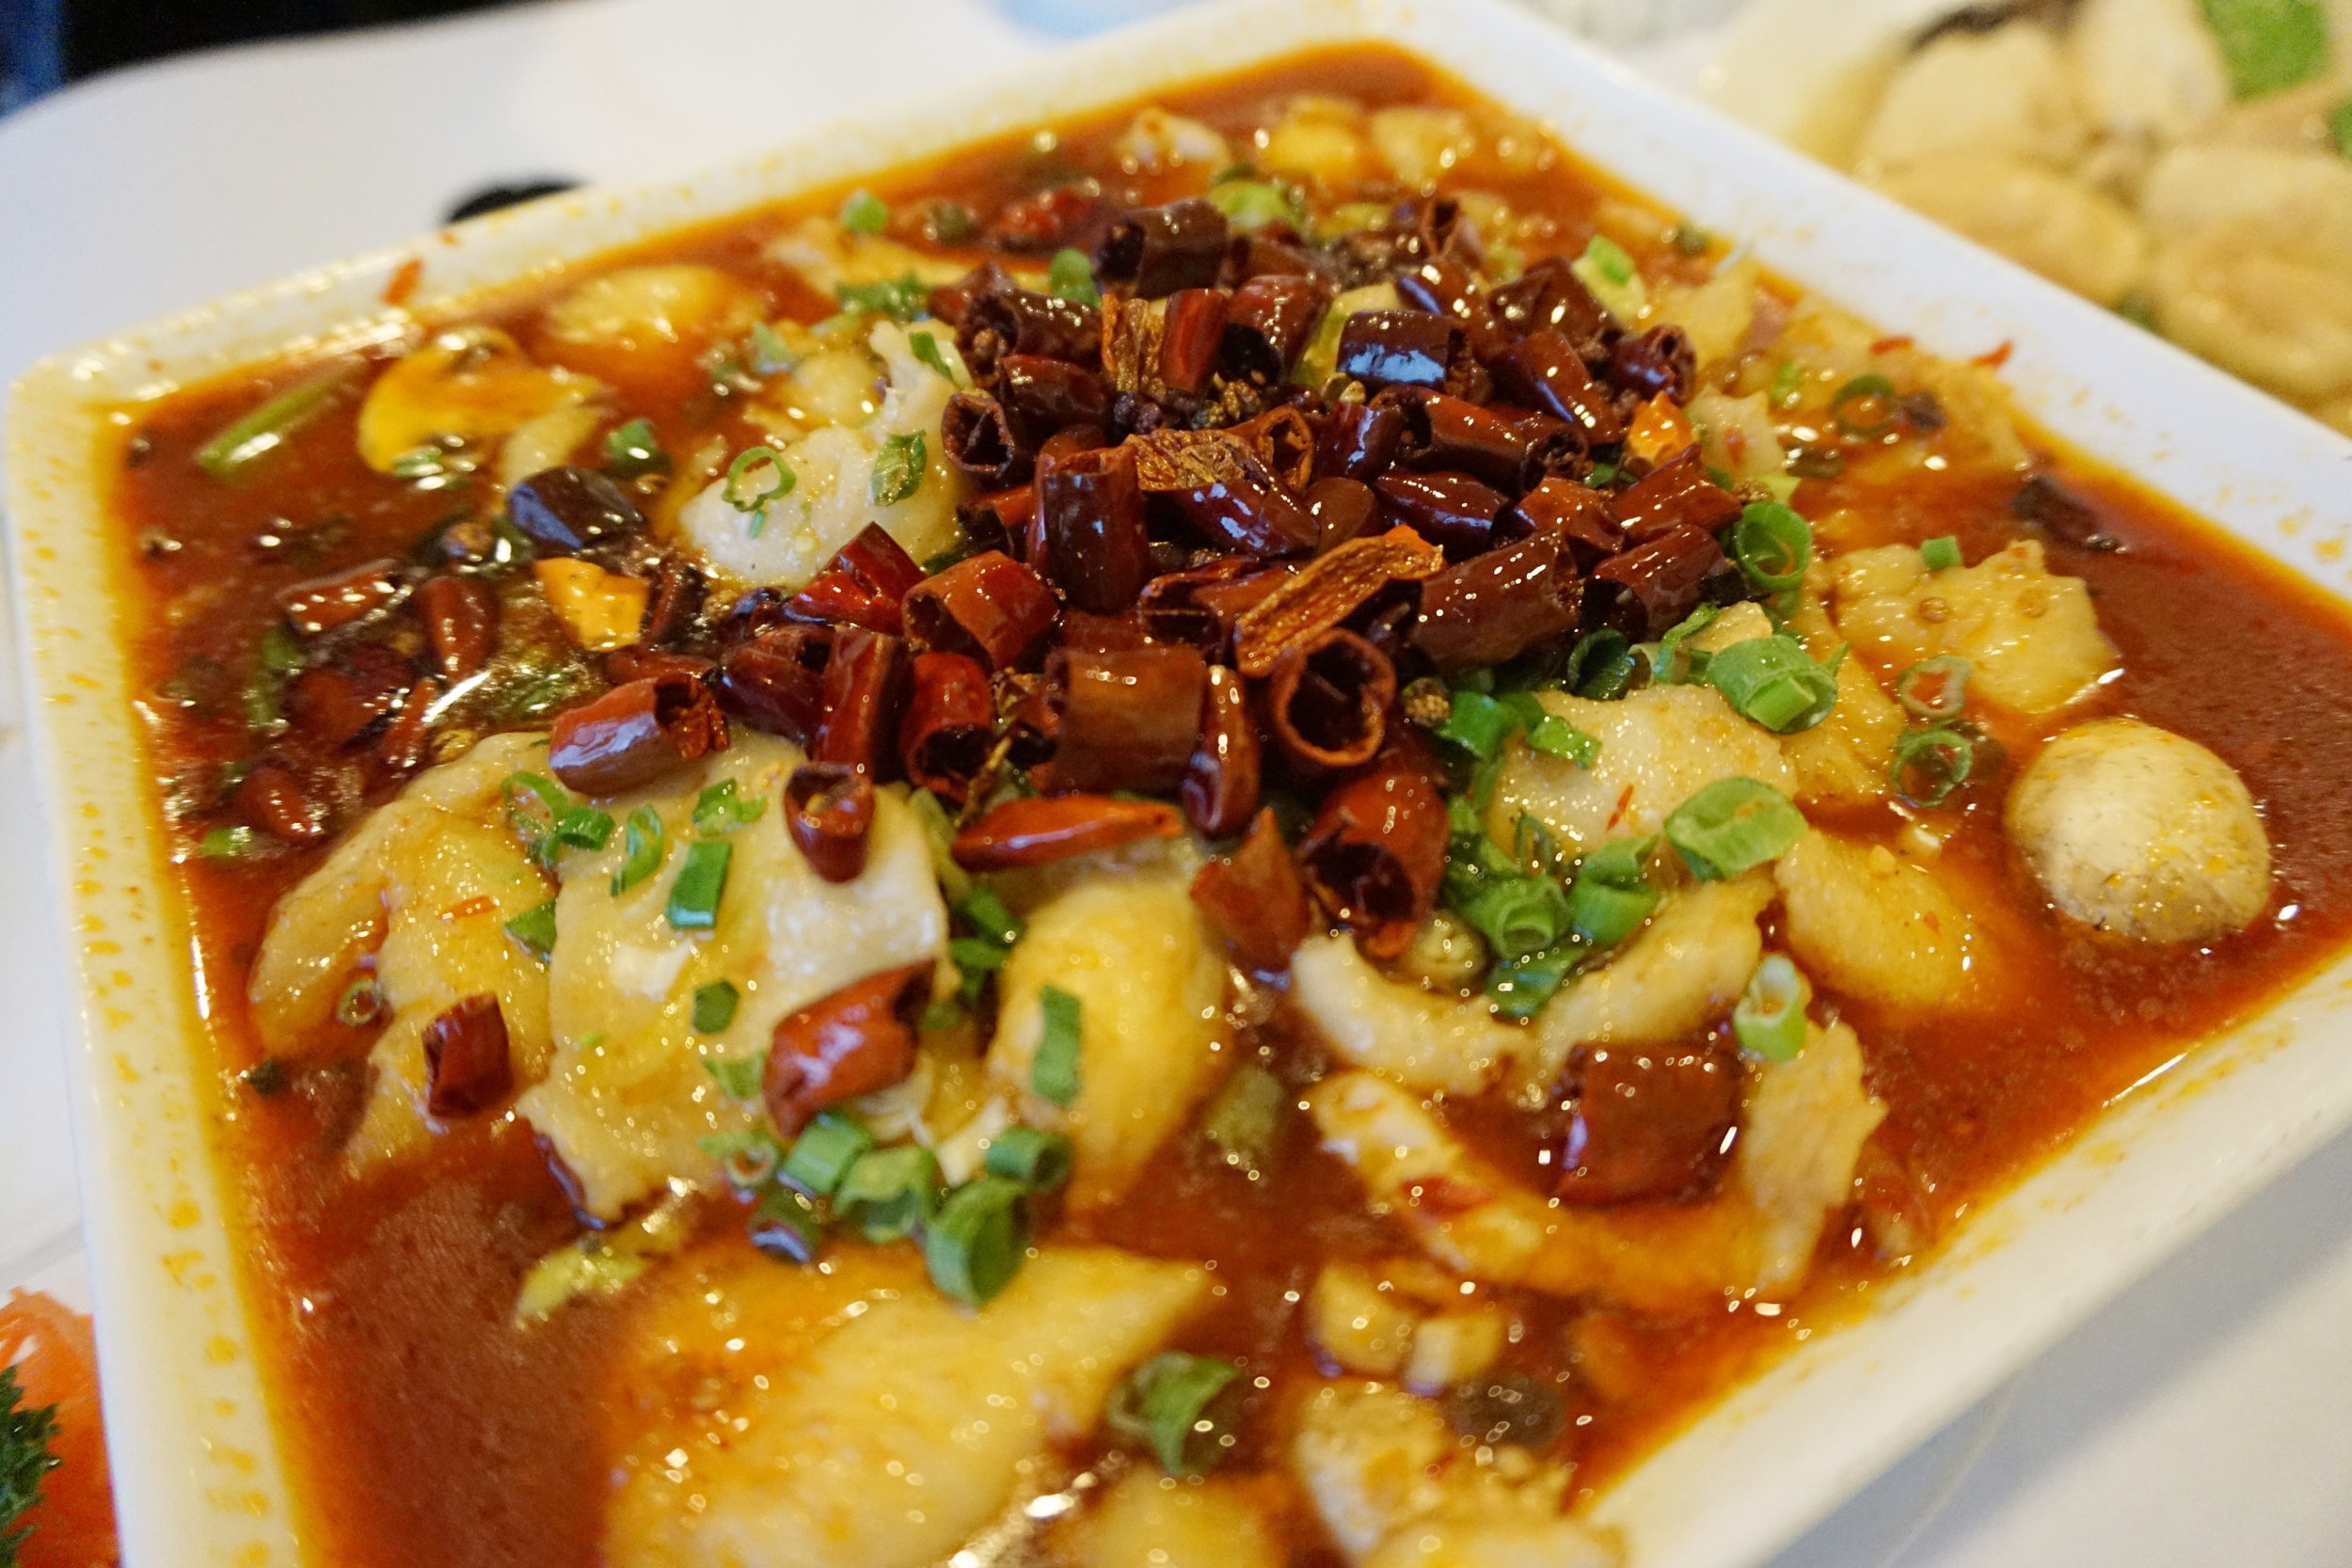 Fish Fillet in Hot Chili Sauce